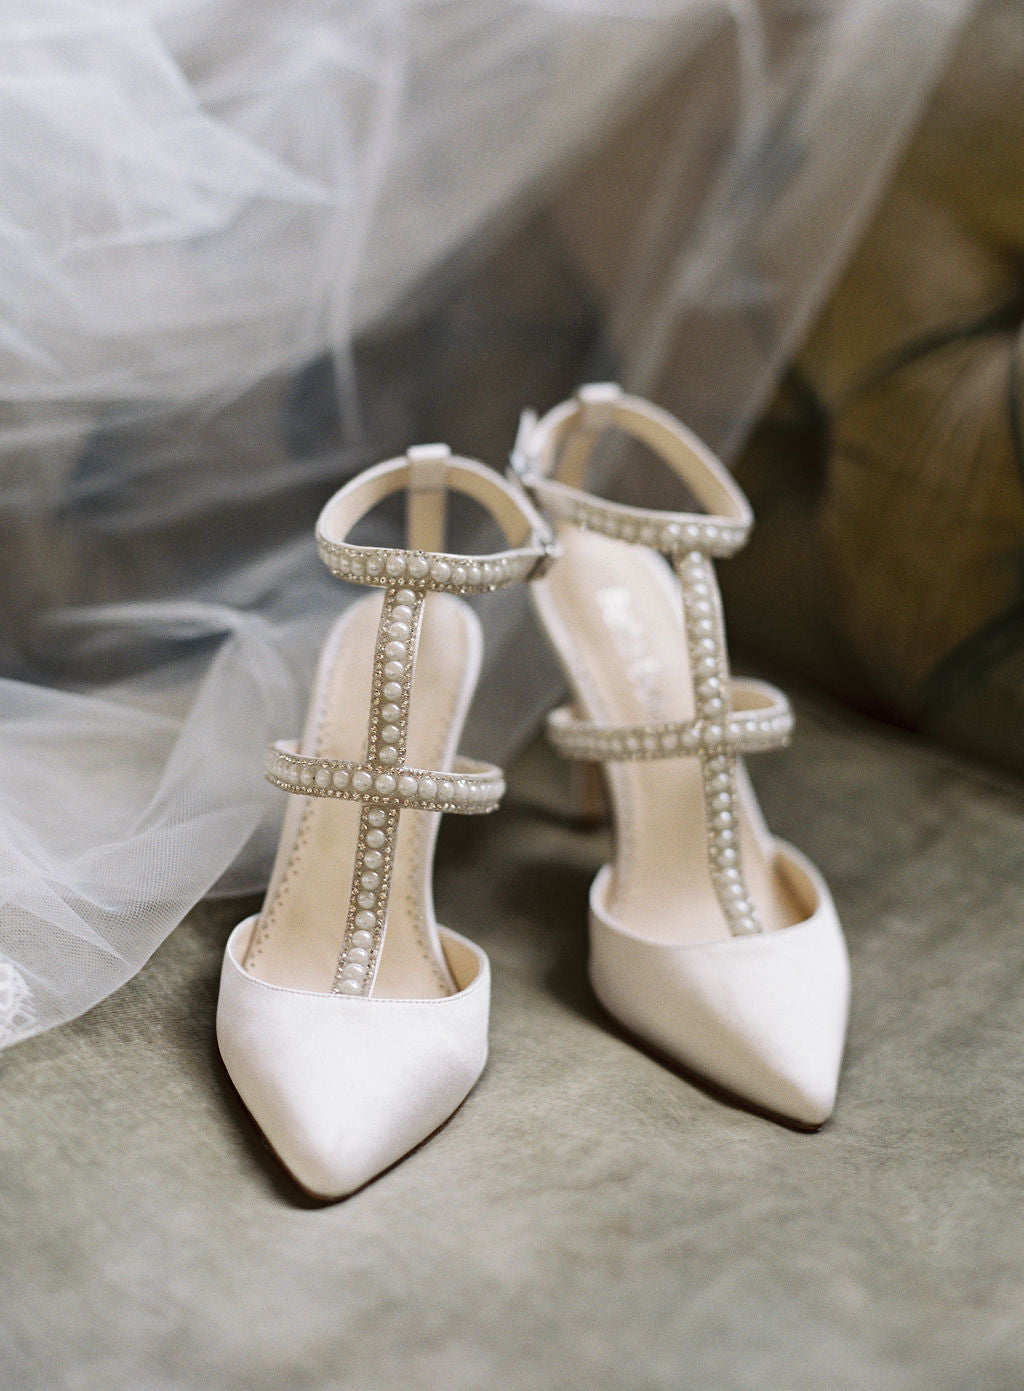 bella belle shoes carolina ivory pearl wedding shoe